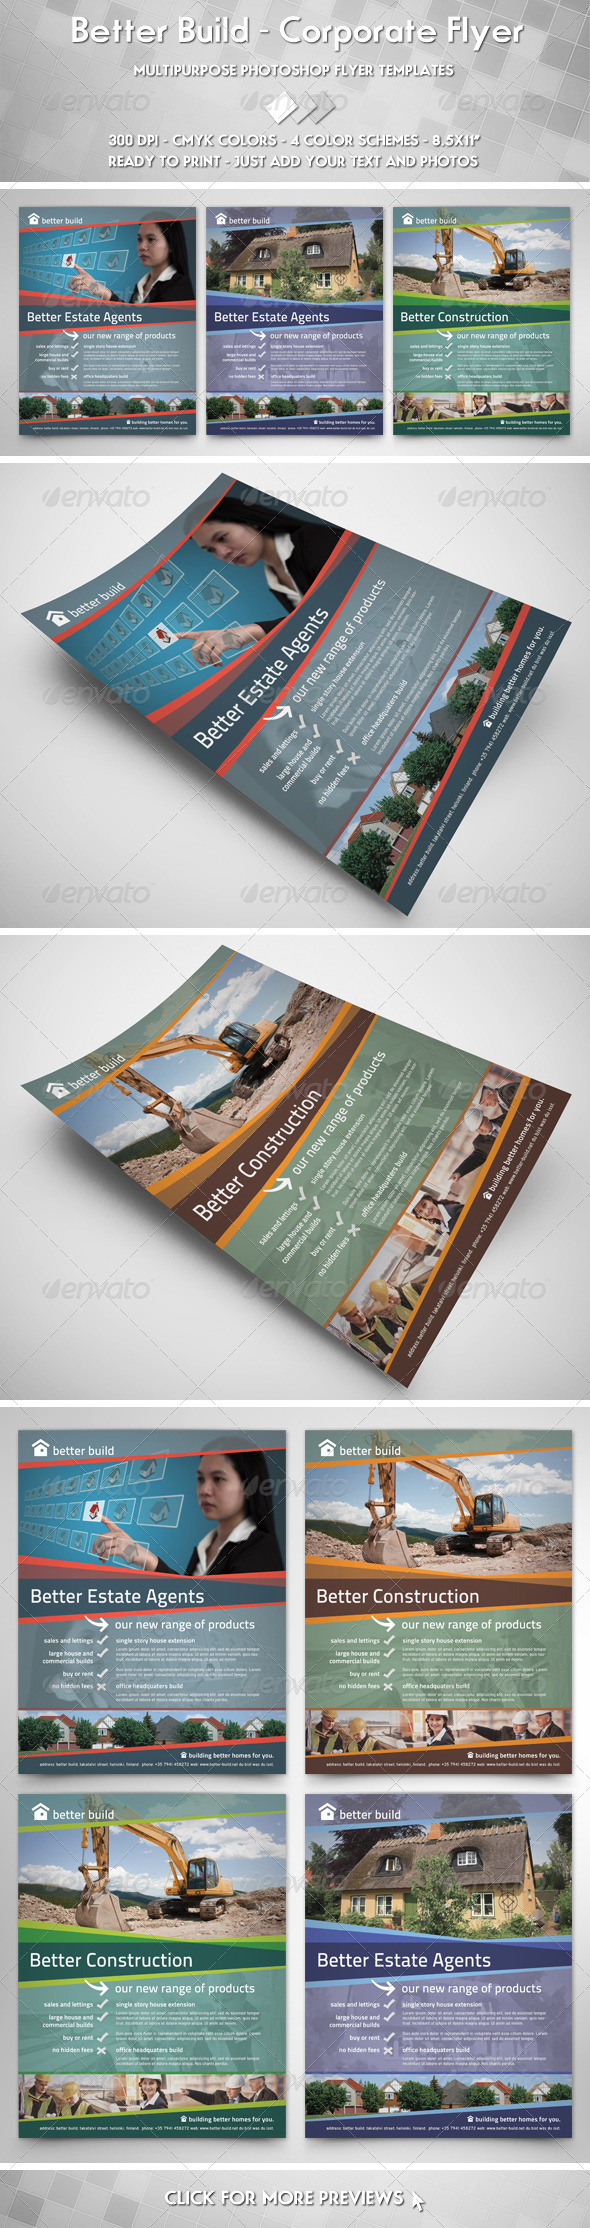 Better Build Flyer - Corporate Flyers